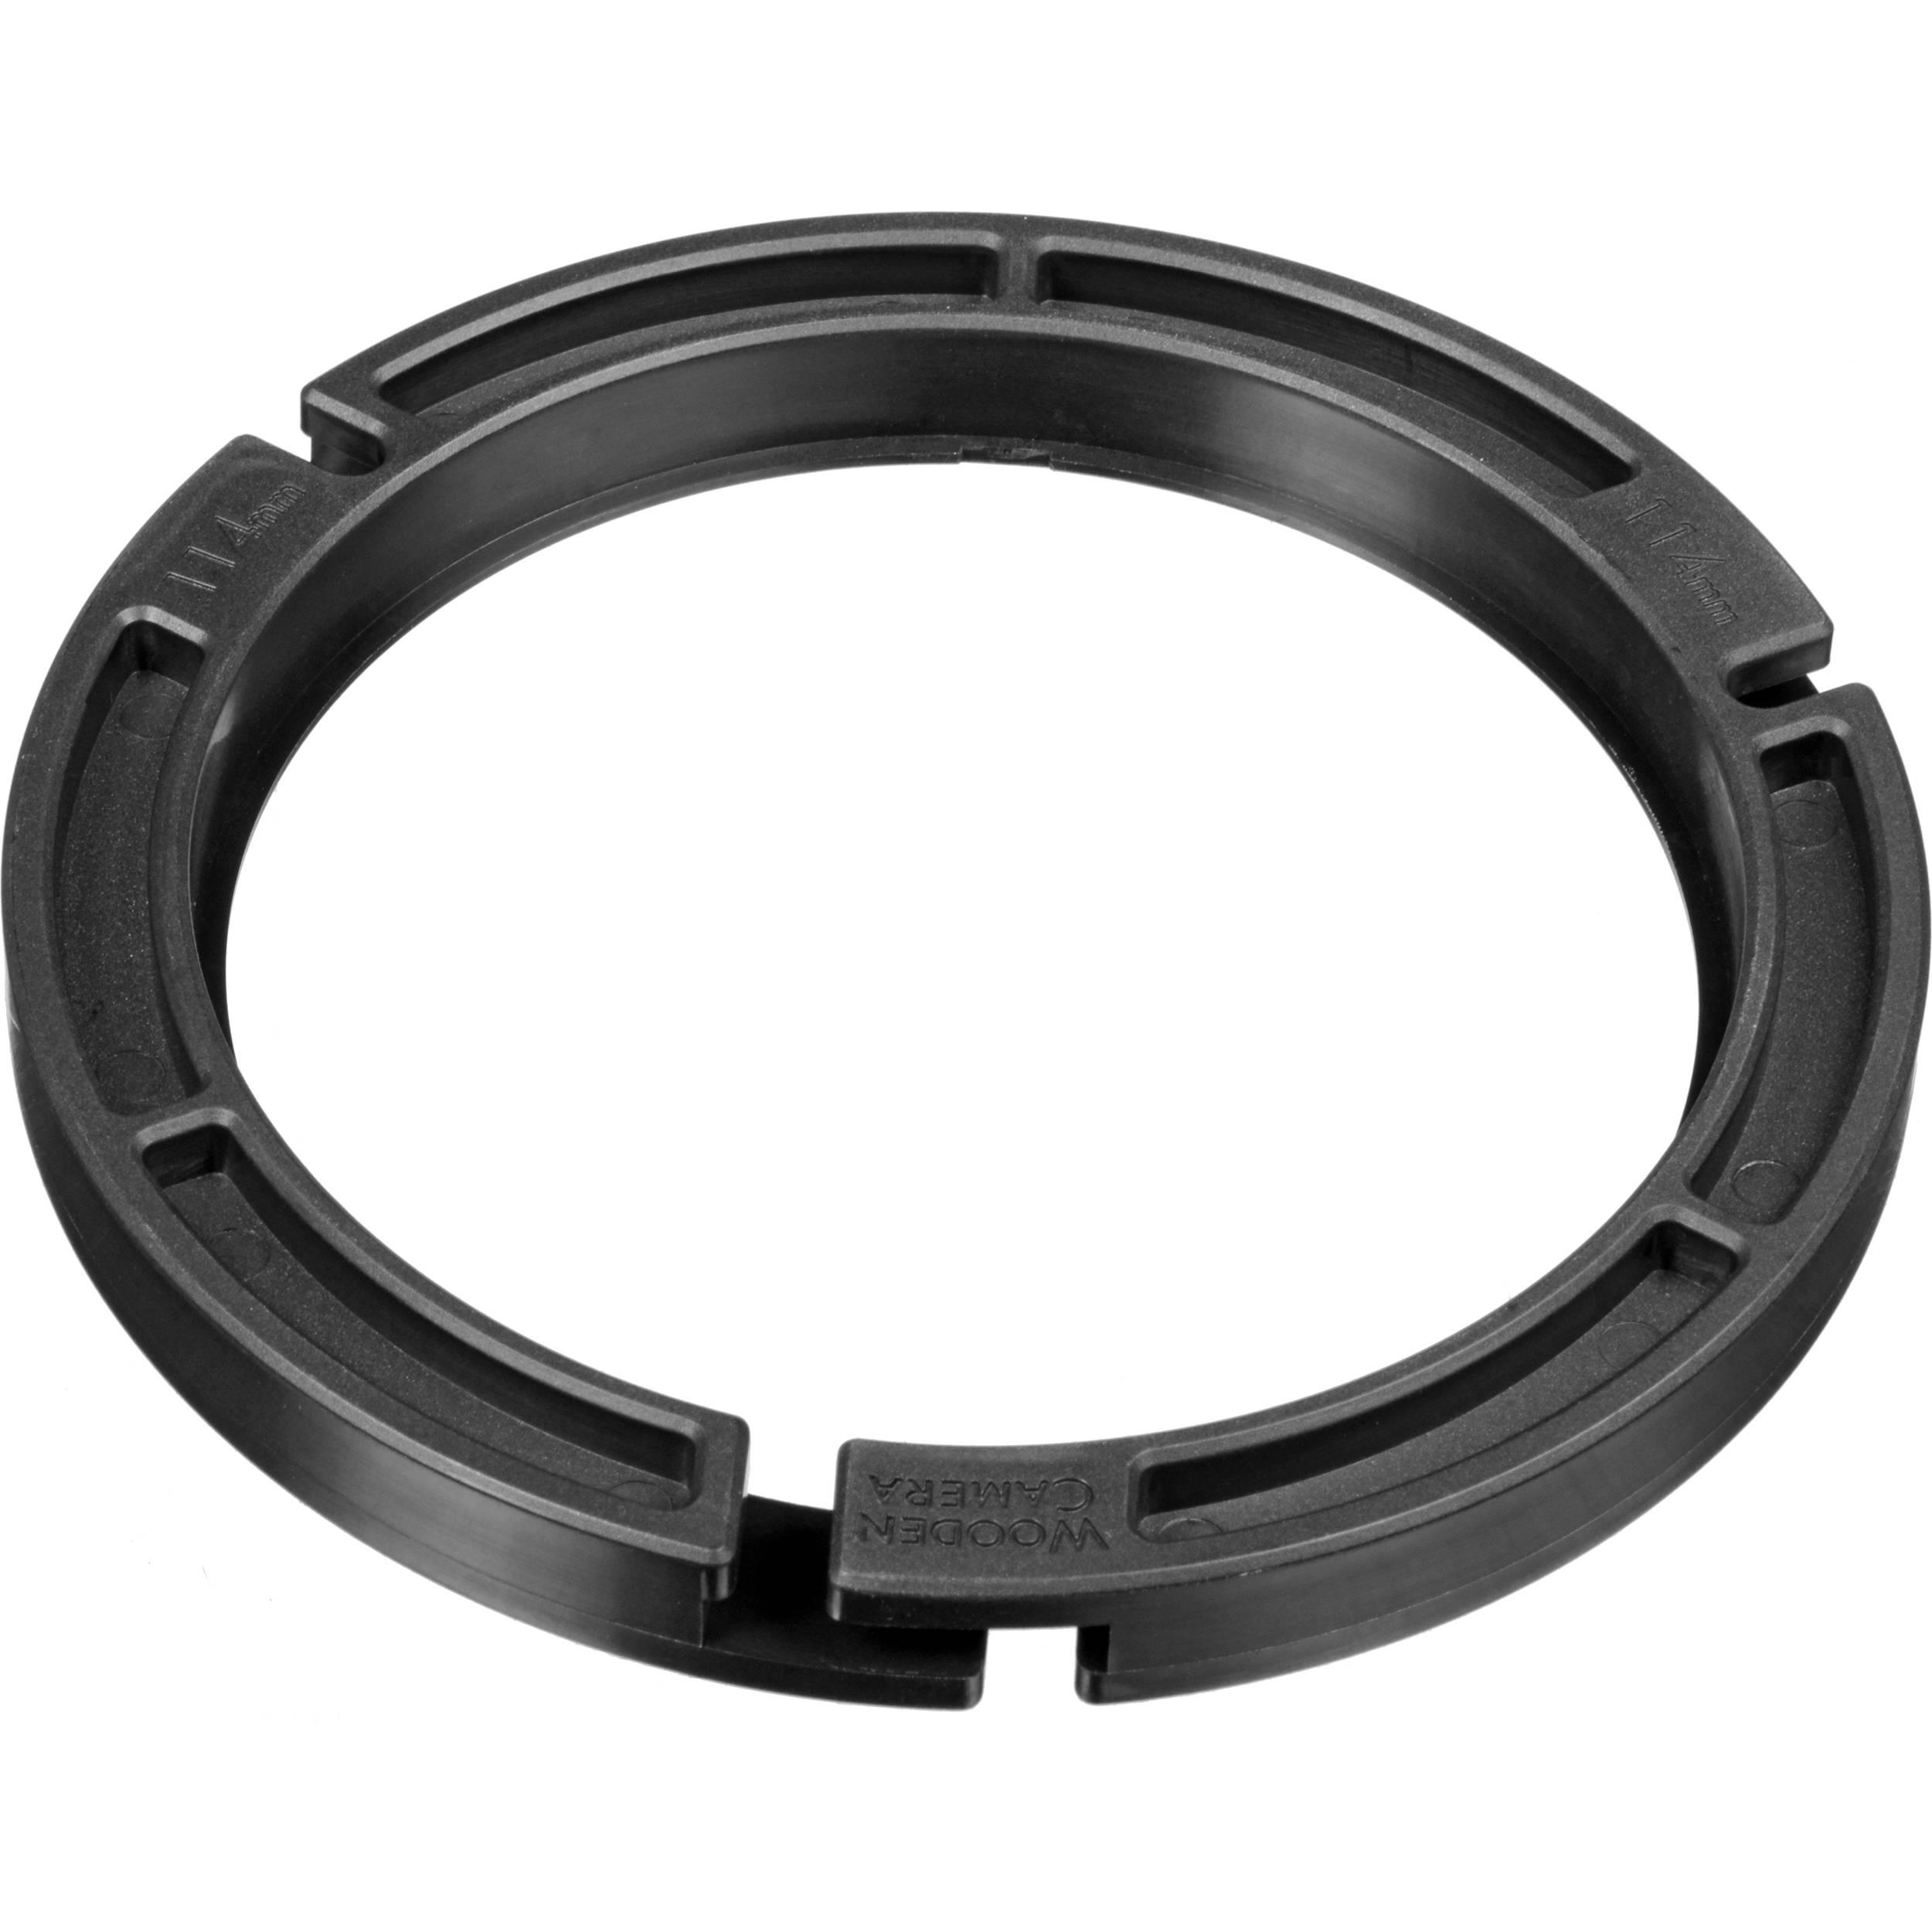 UMB-1 Mattebox Clamp On Ring 143-110mm Wooden Camera